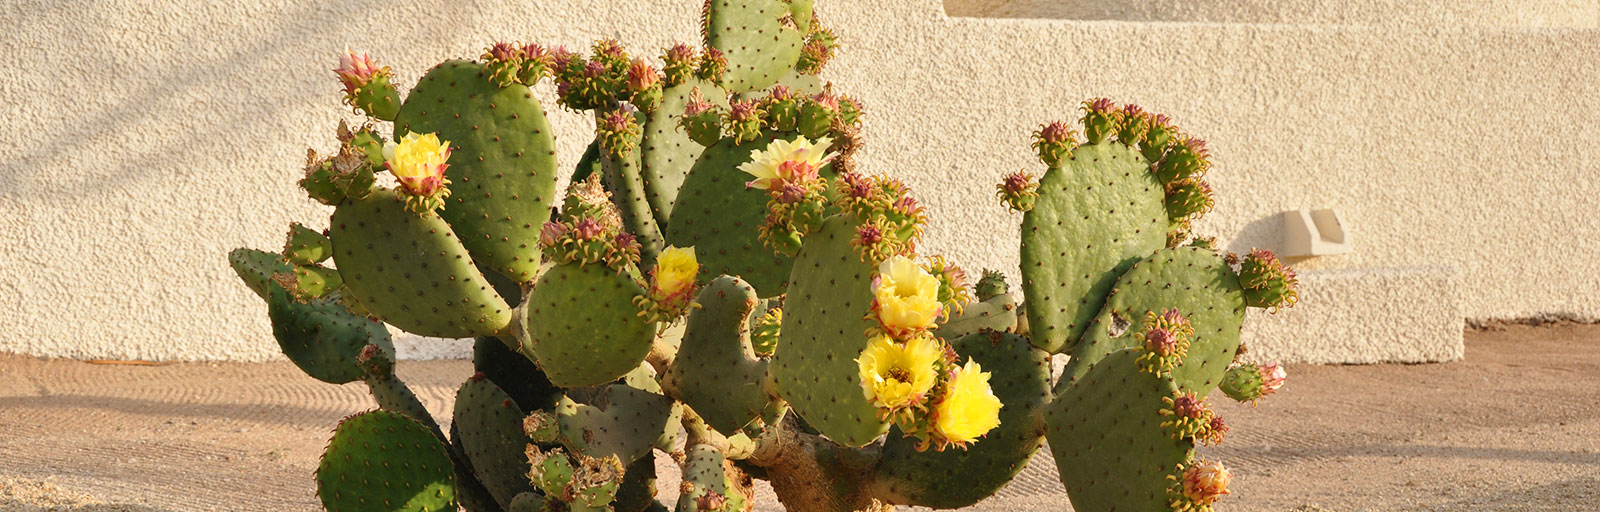 Gardens at Yoga Retreat Mexico: Prickly Pear Cactus in Bloom